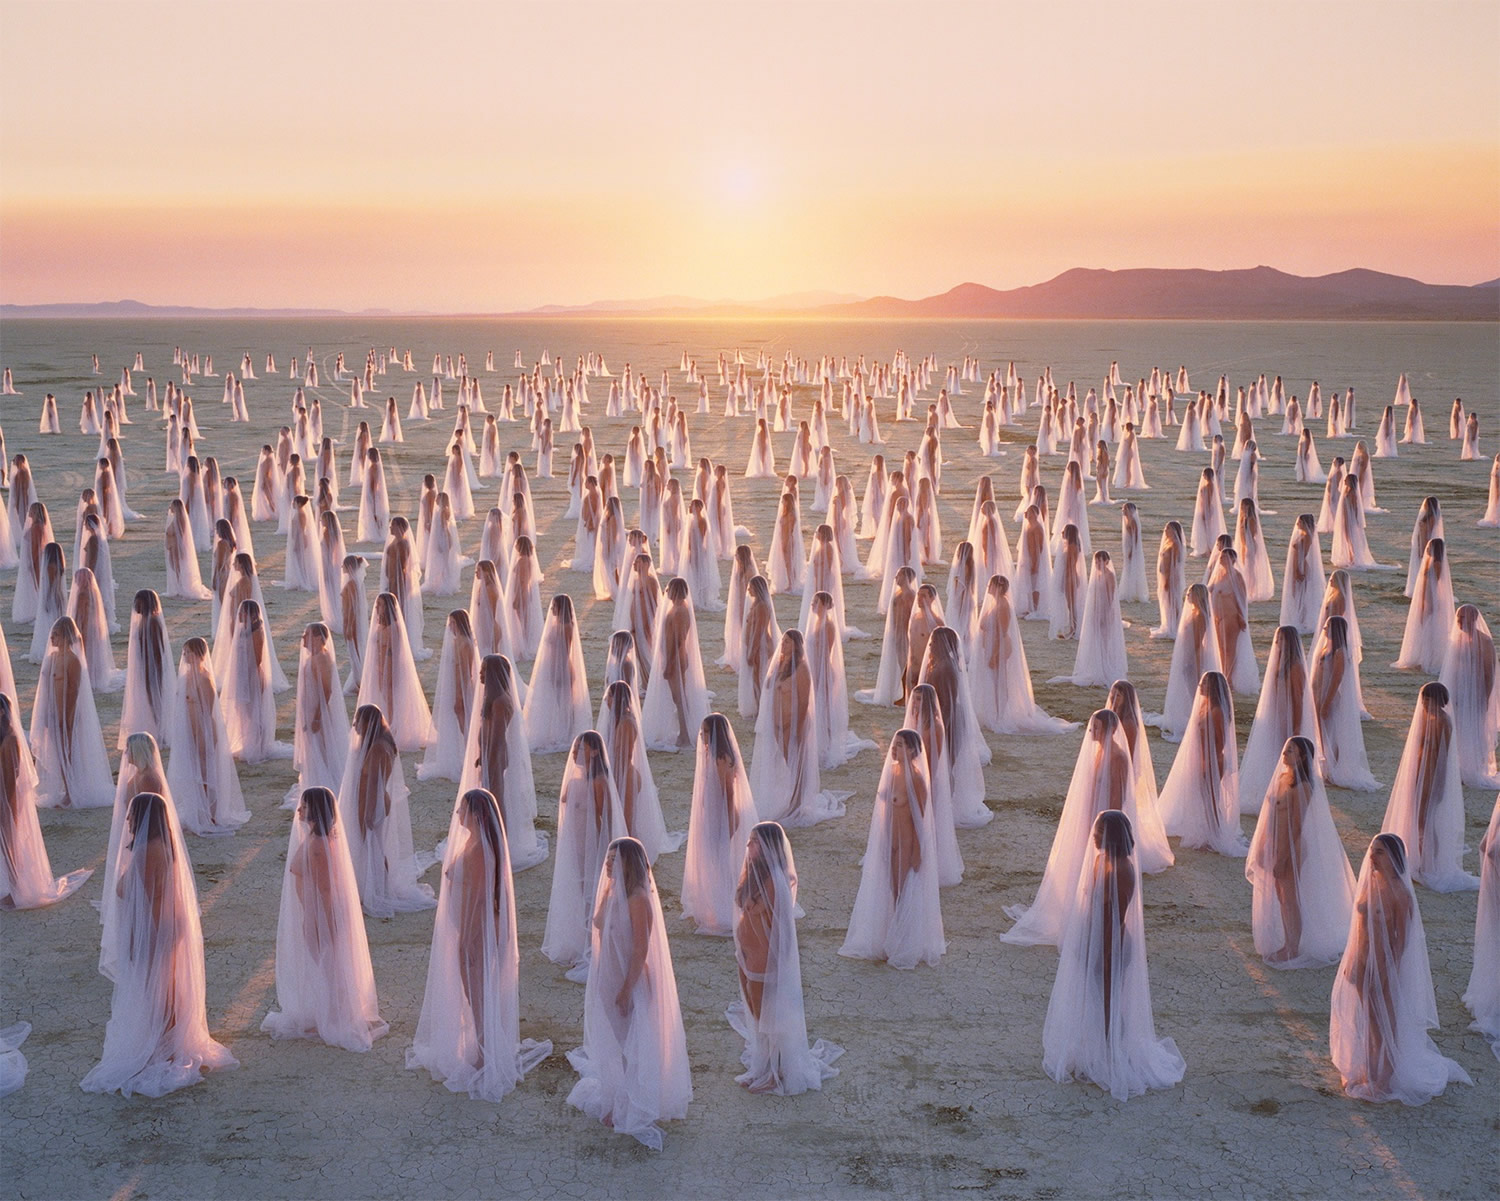 """Desert Spirits"" (2013) by spencer tunick"